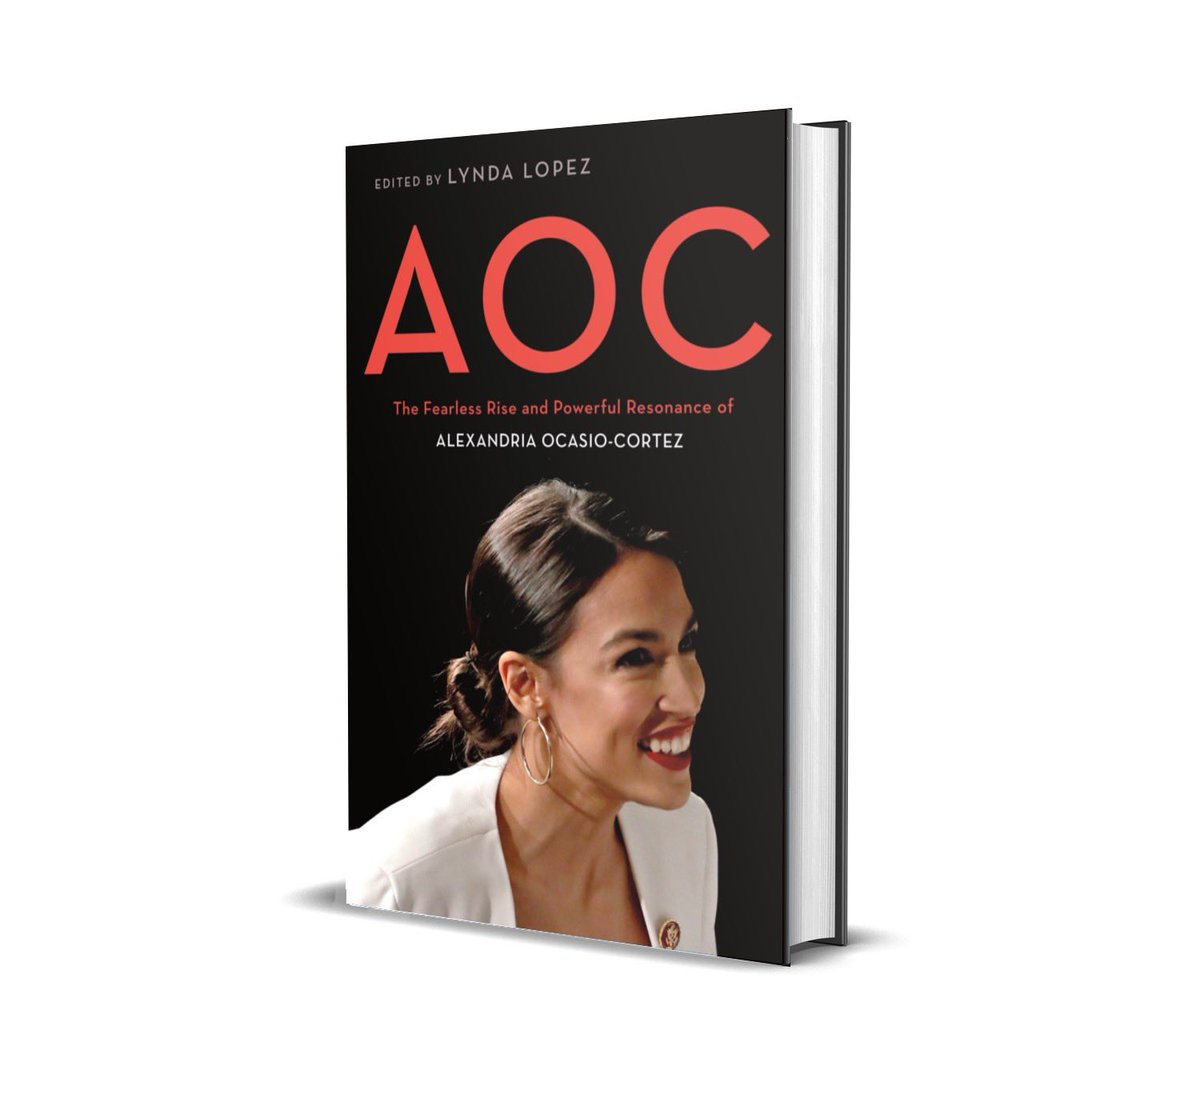 I am so excited to announce my book, AOC: The Fearless Rise and Powerful Resonance of Alexandria Ocasio-Cortez ...an anthology exploring the impact of AOC. Thank you to the fellow authors that also wrote chapters for this book! Out 8/11. https://t.co/2K1F72iw8w https://t.co/Ey1djfHiF6